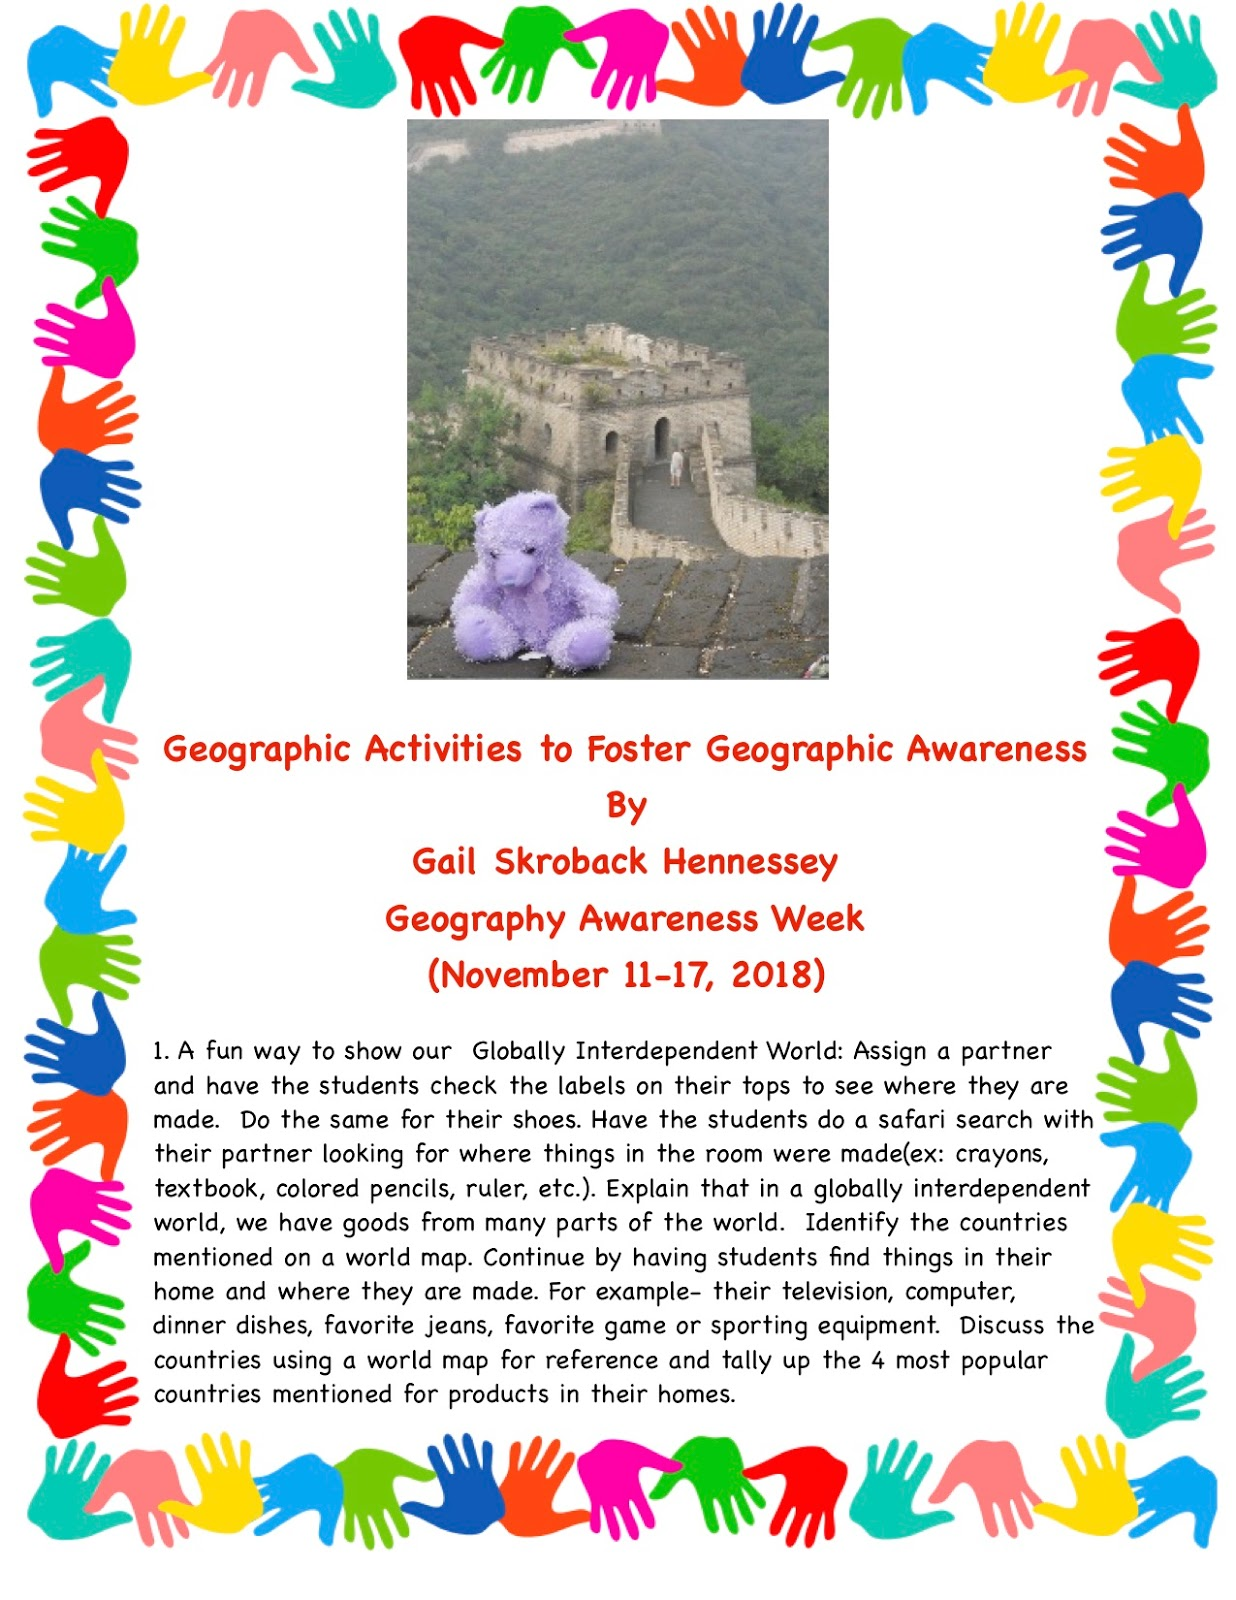 Geography Awareness Week - Activities to Use with Students